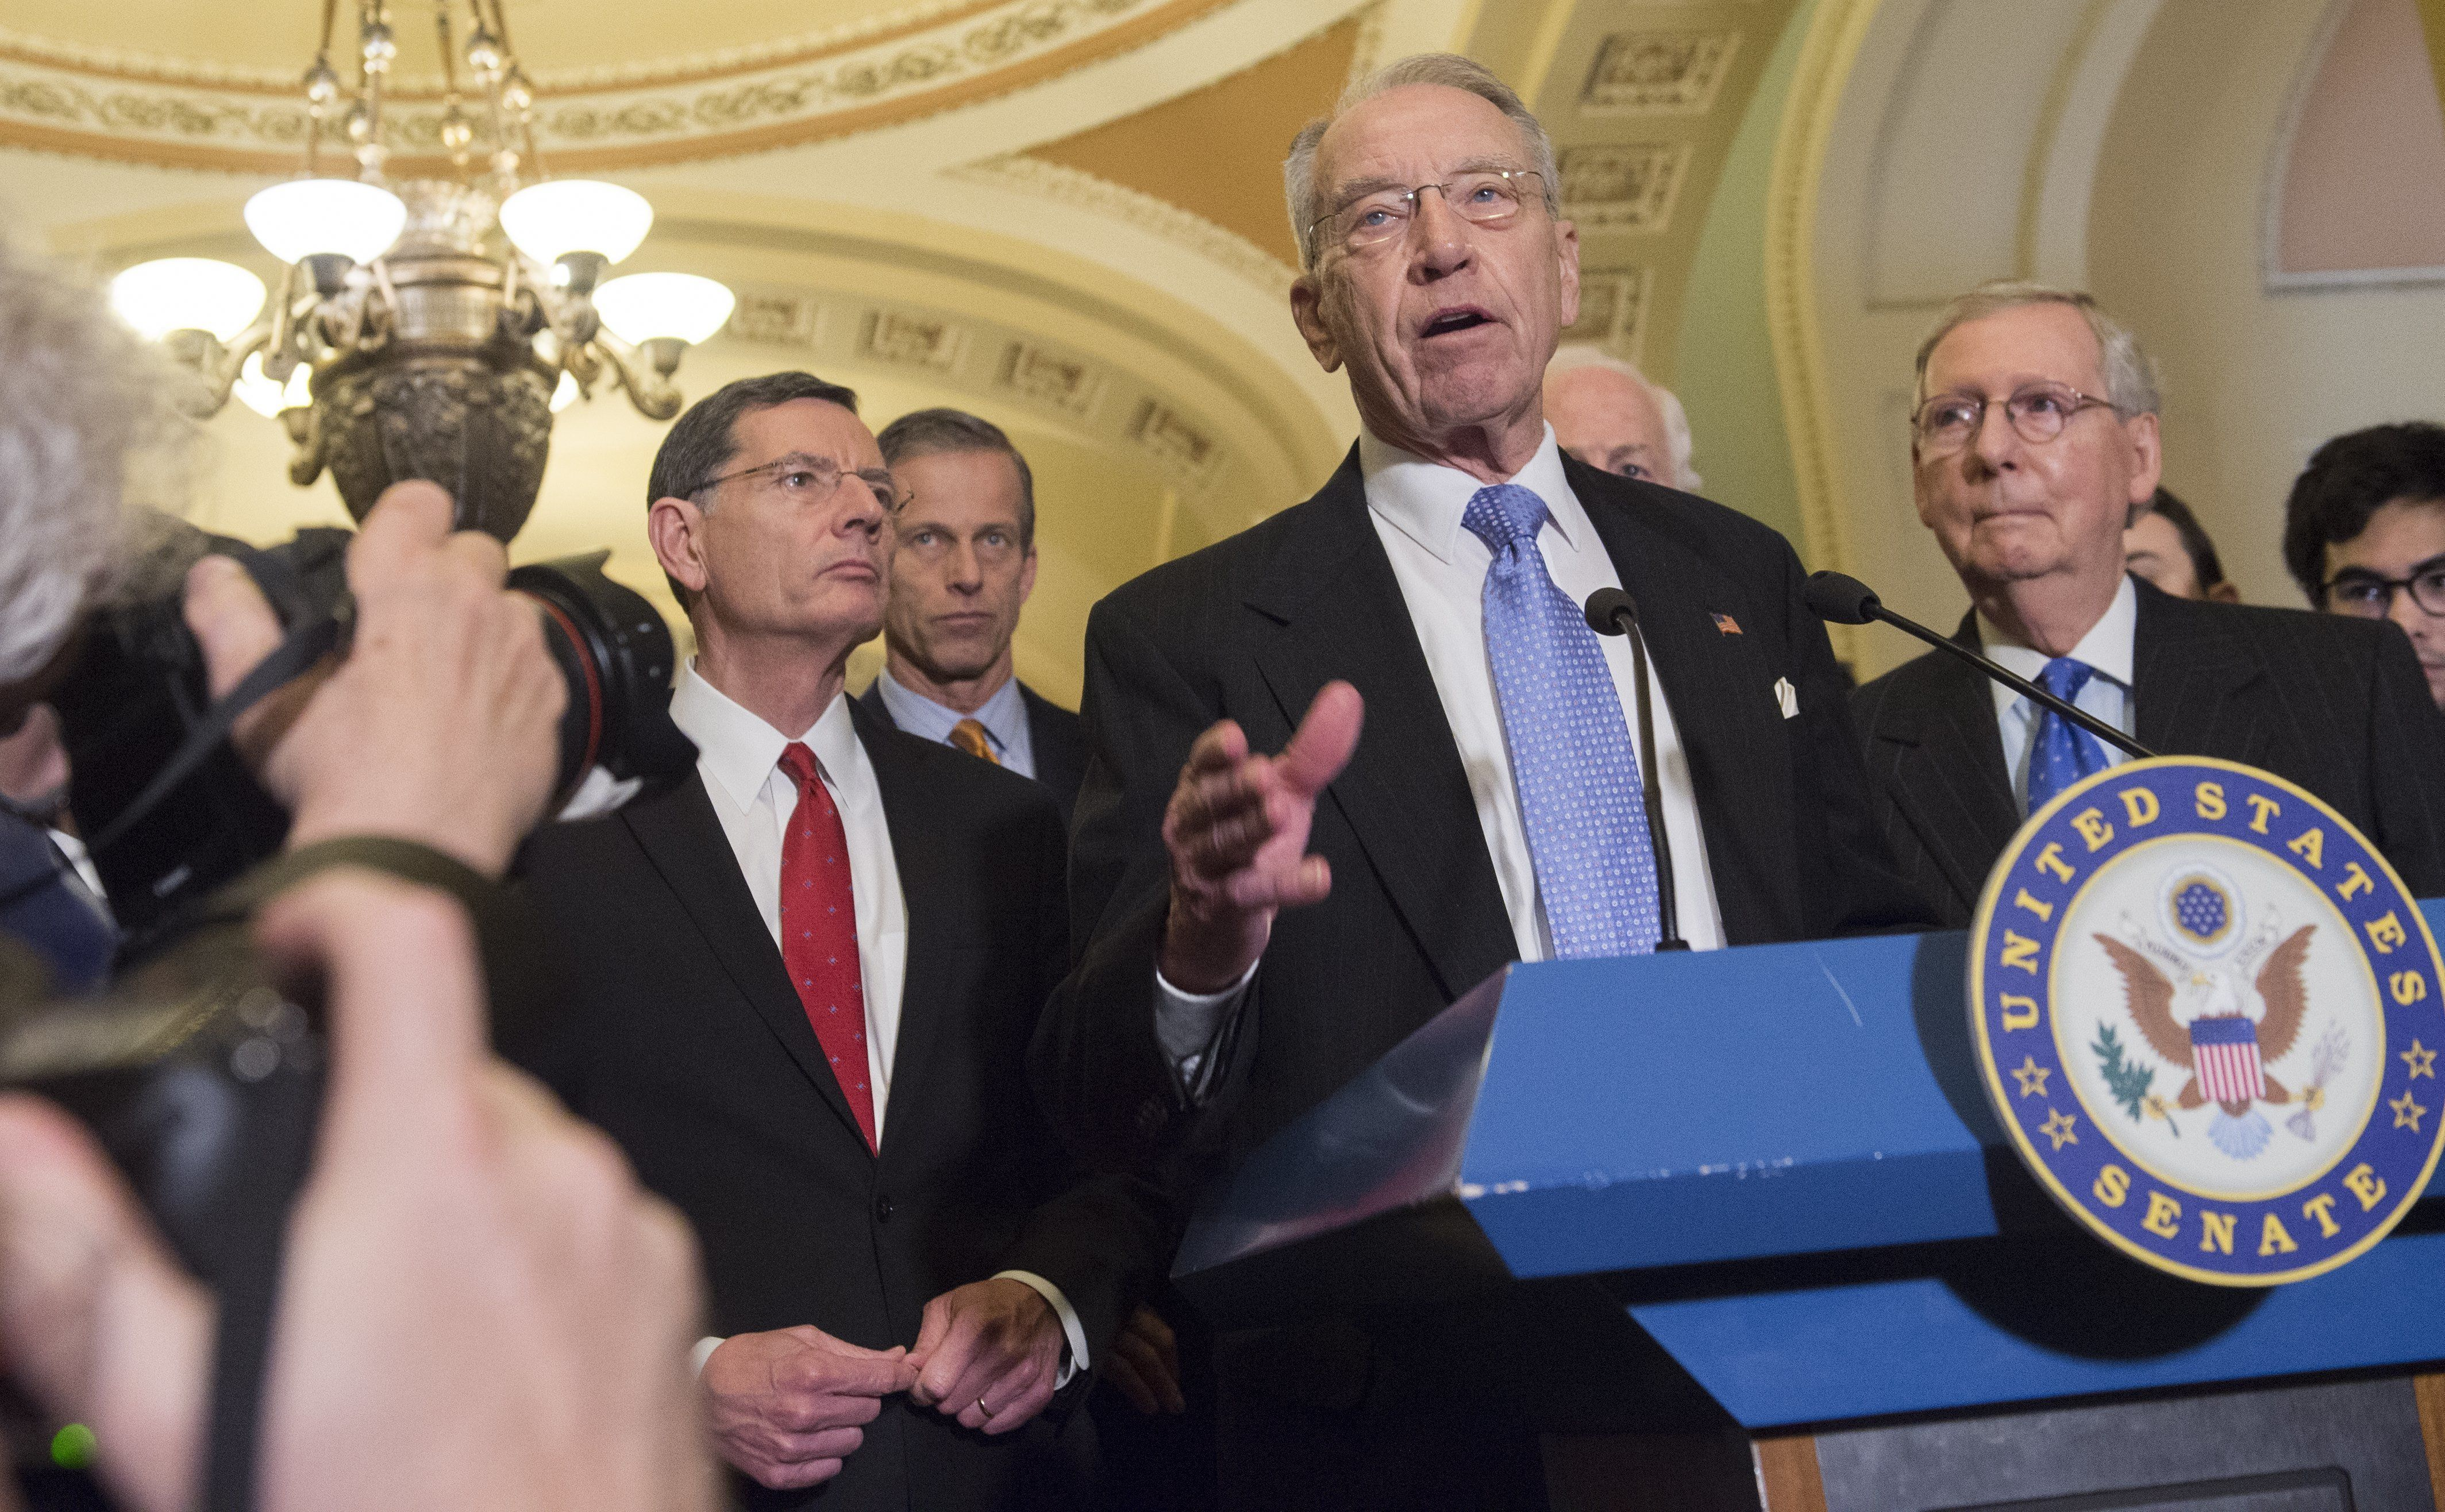 Senate Judiciary Committee ChairmanChuck Grassley said he'd have to talk to colleagues before deciding whether to bring